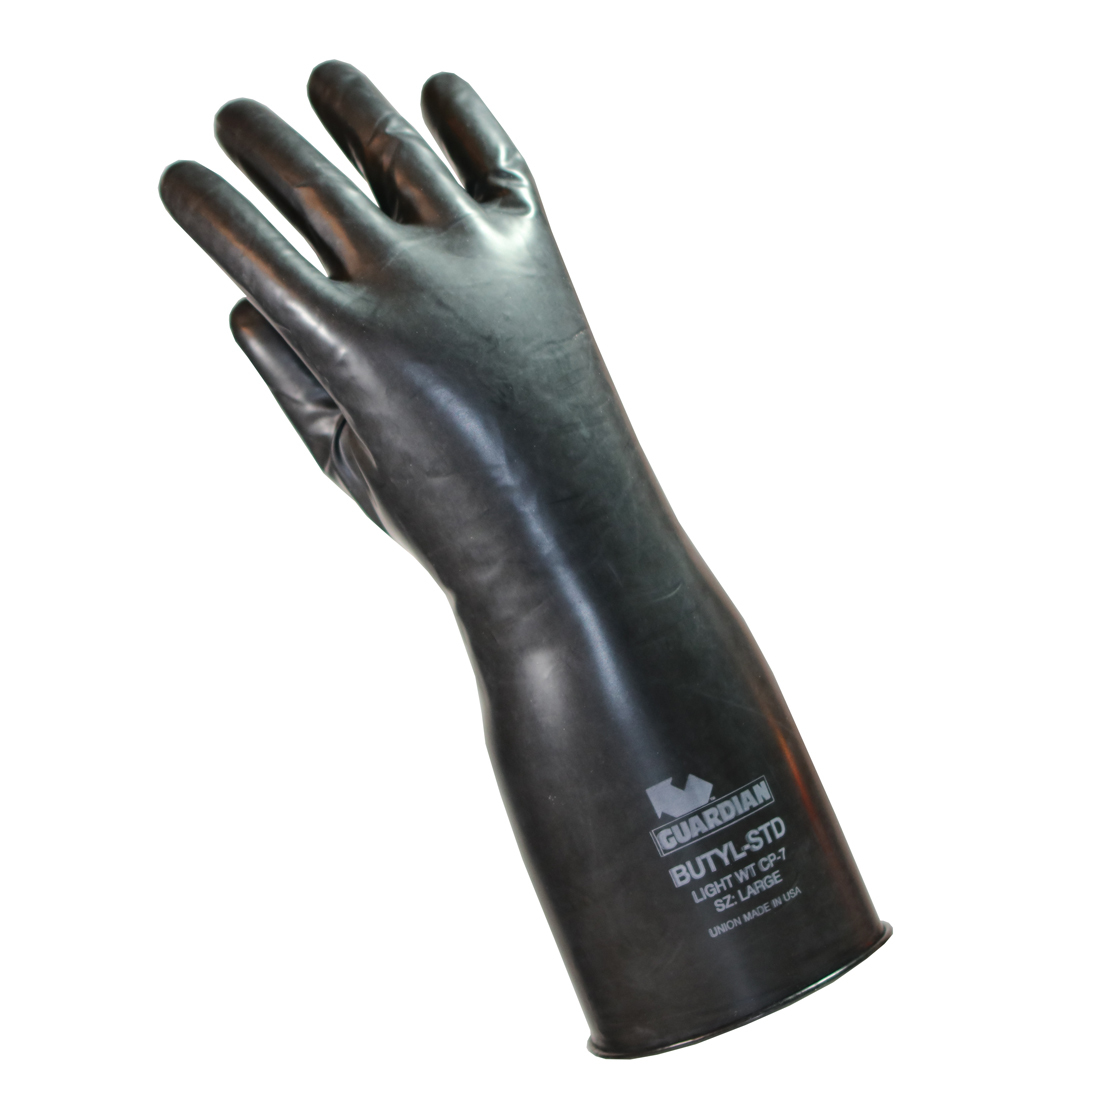 7 mil Thickness Rough Grip XS 14 Length Guardian Manufacturing 50901 Butyl Chemical Resistant Rubber Glove